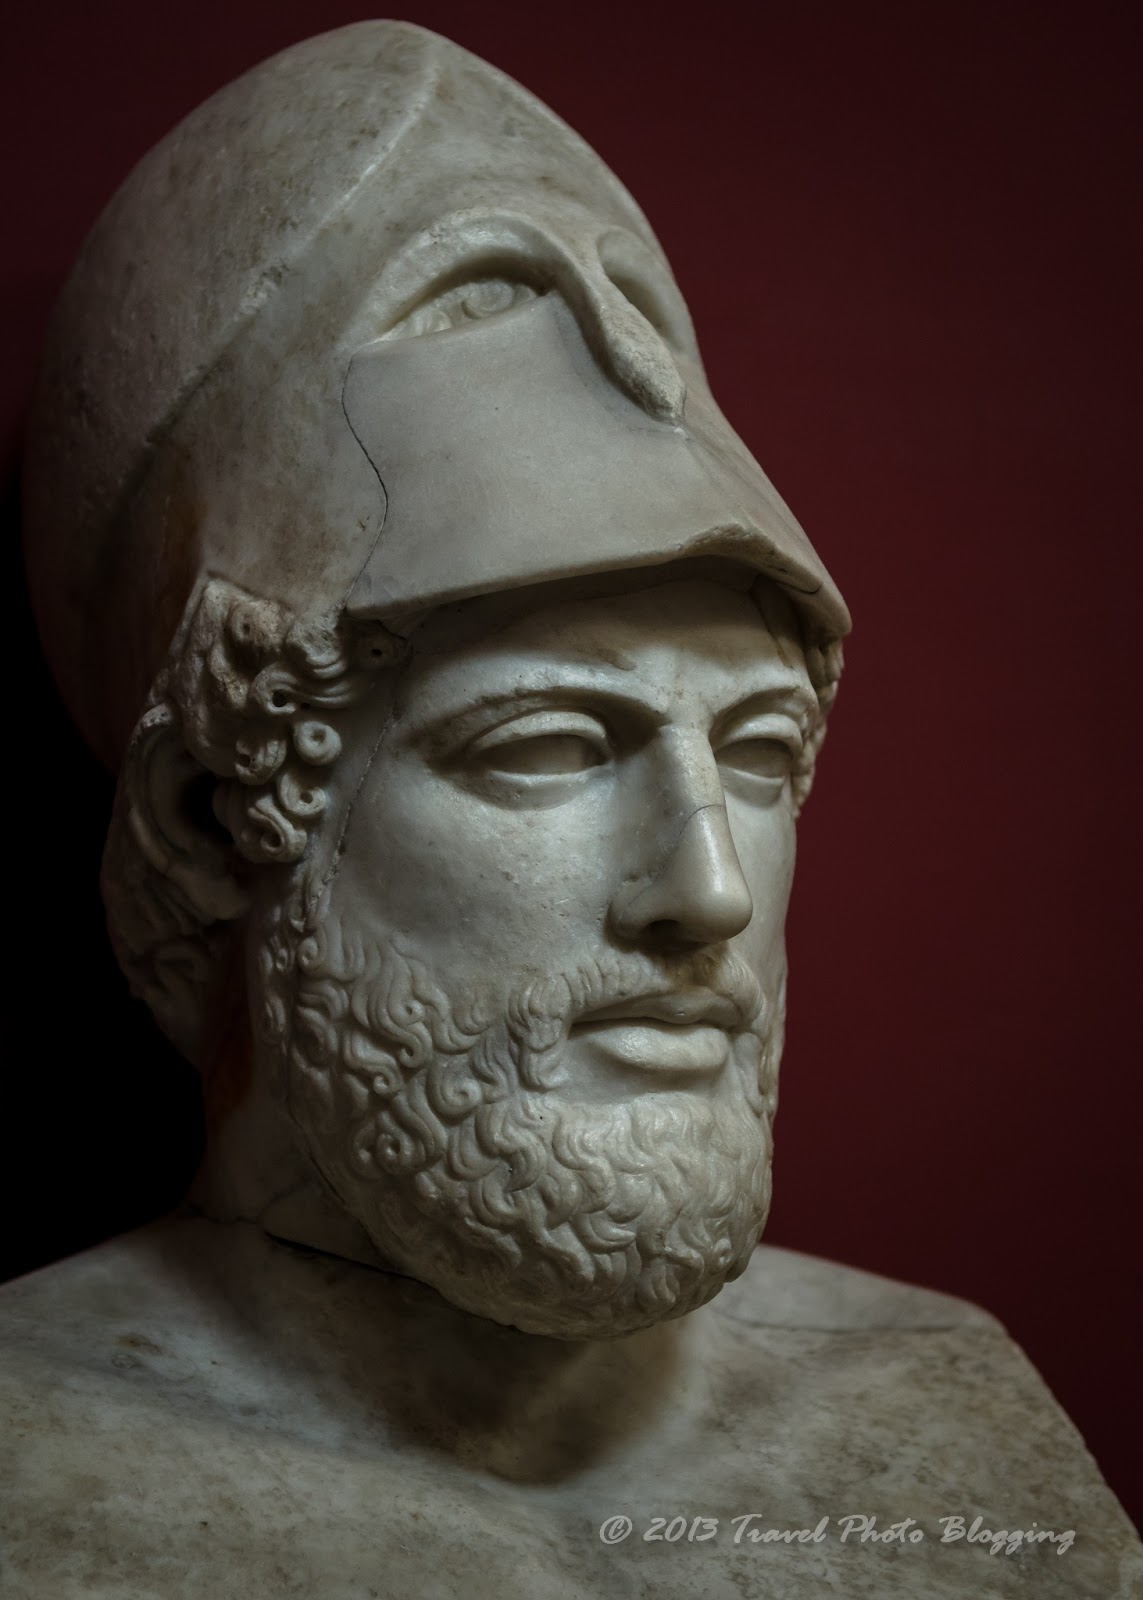 an essay on the funeral oration of pericles Critical essay: pericles' funeral oration speec explains the views of the athenians from an ideological stand point critical essay: pericles' funeral oration.